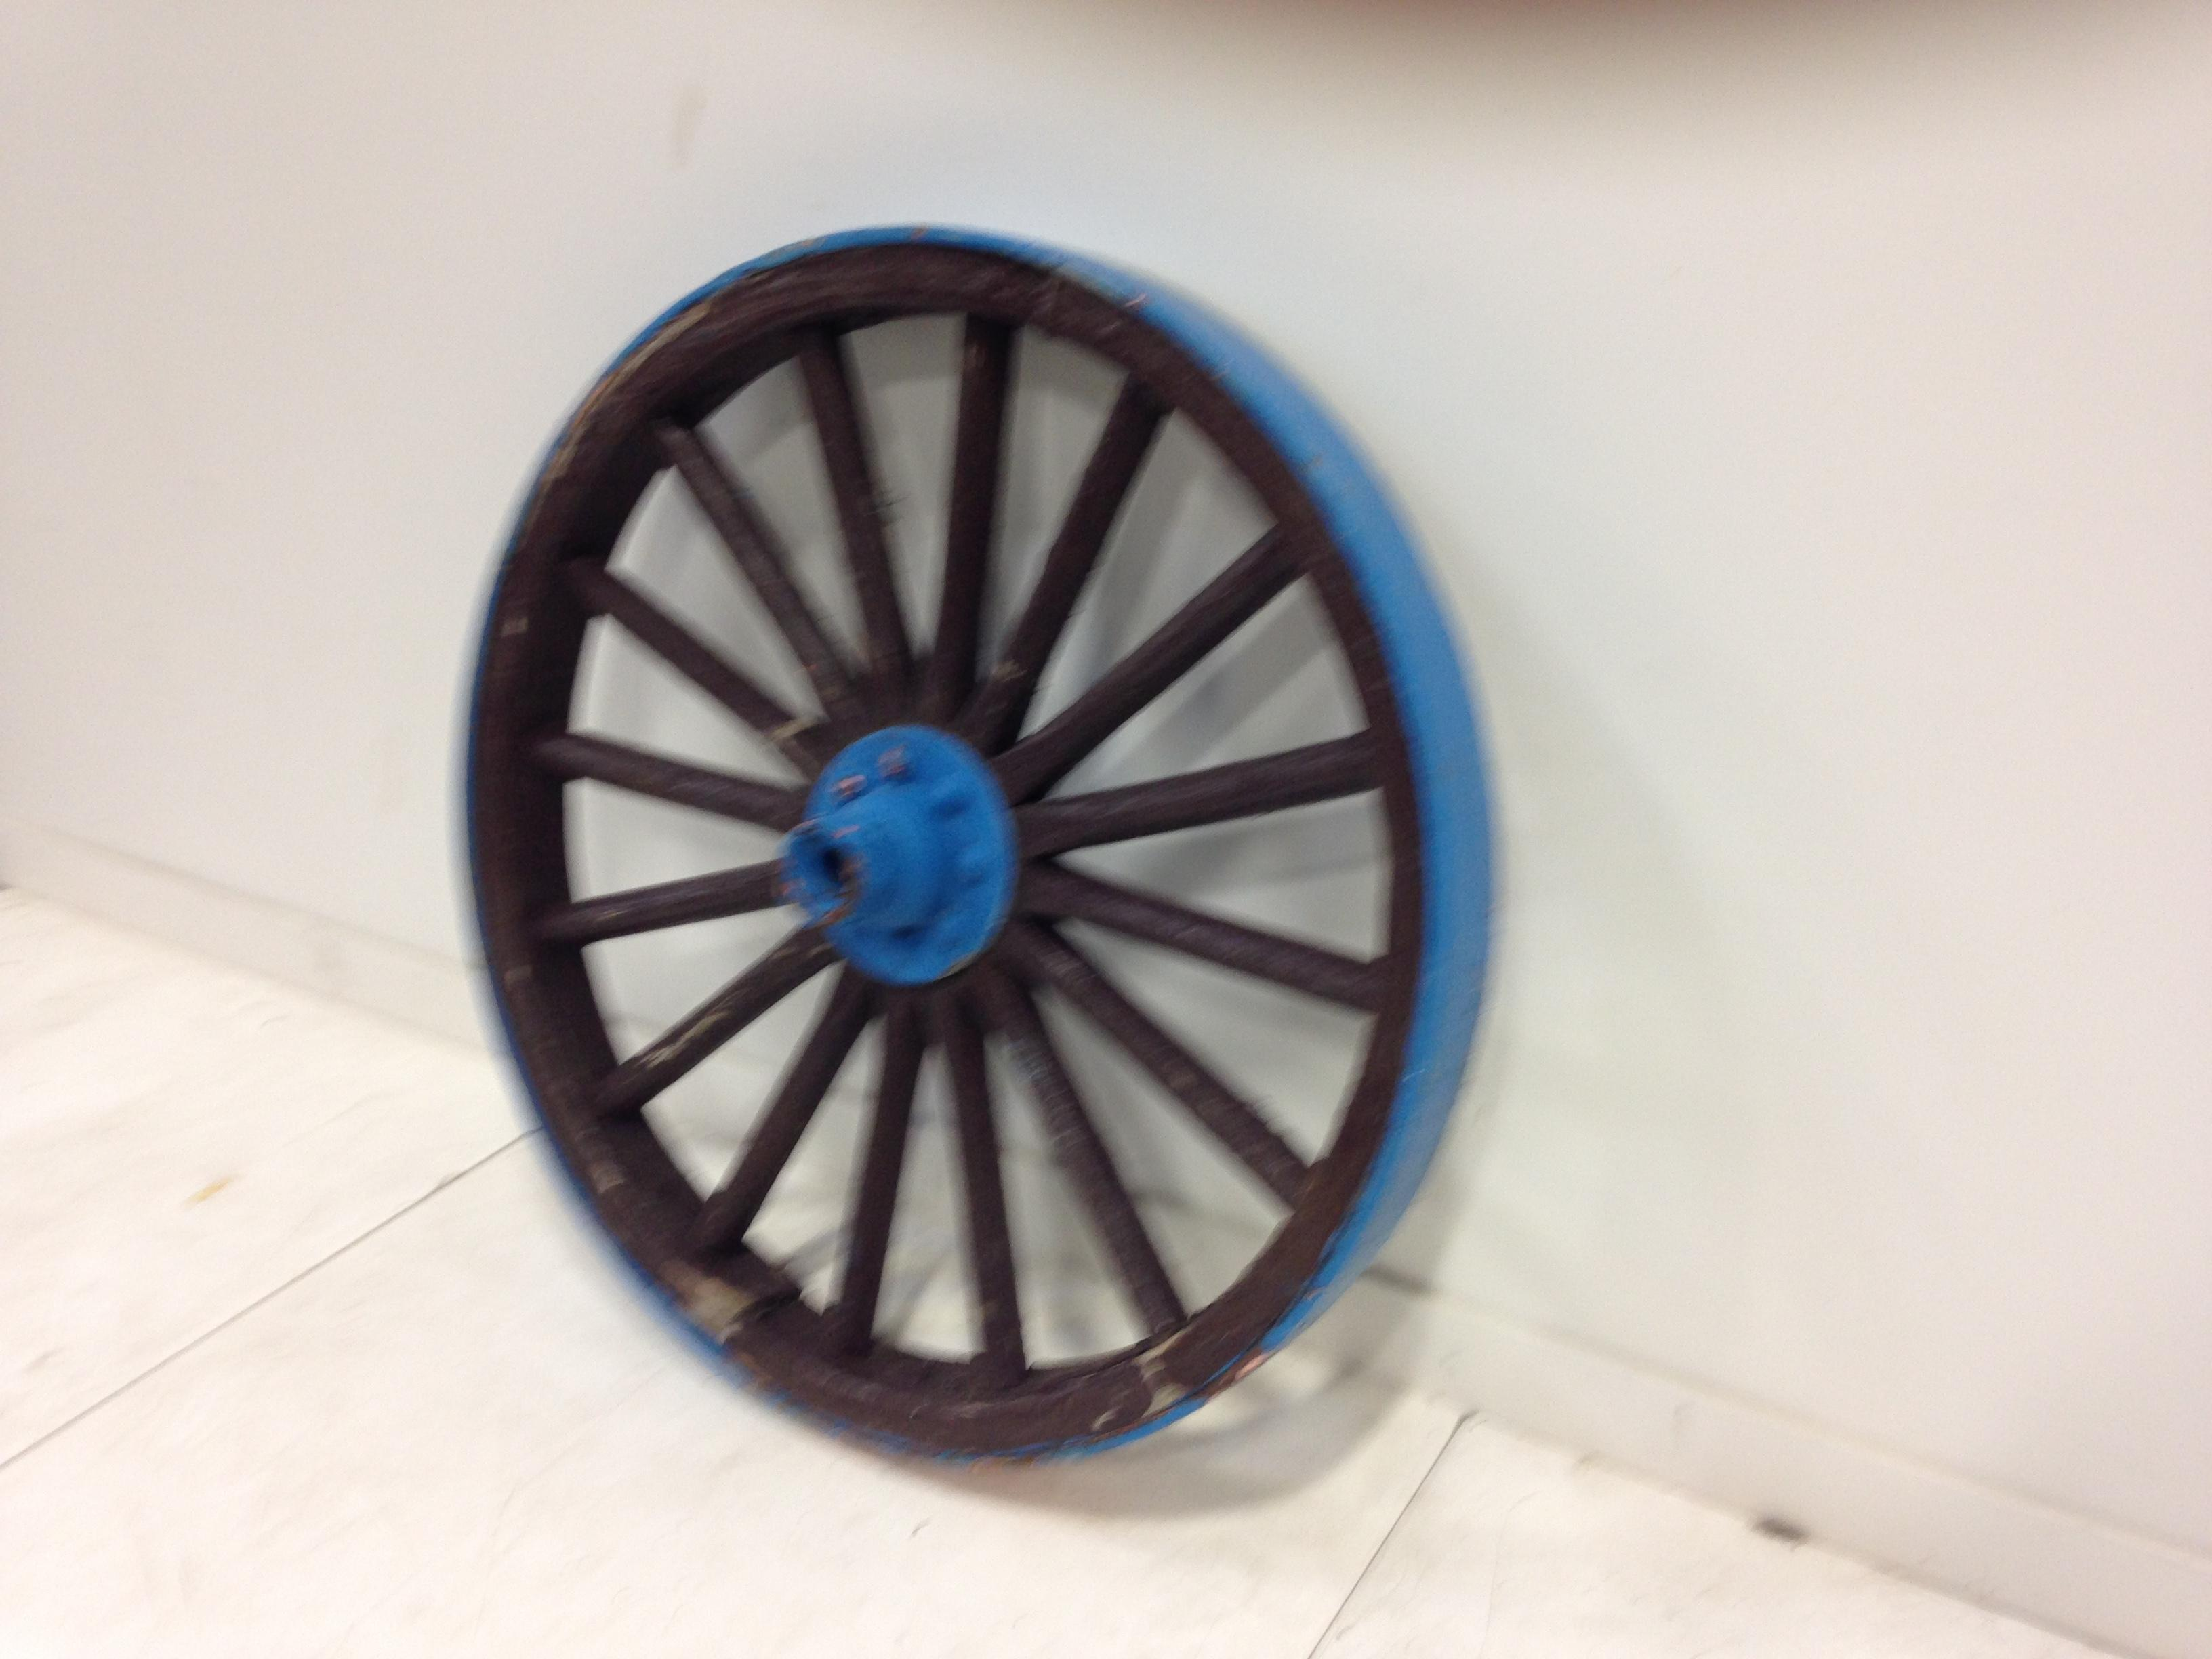 Lge wagon wheel w/blue accents